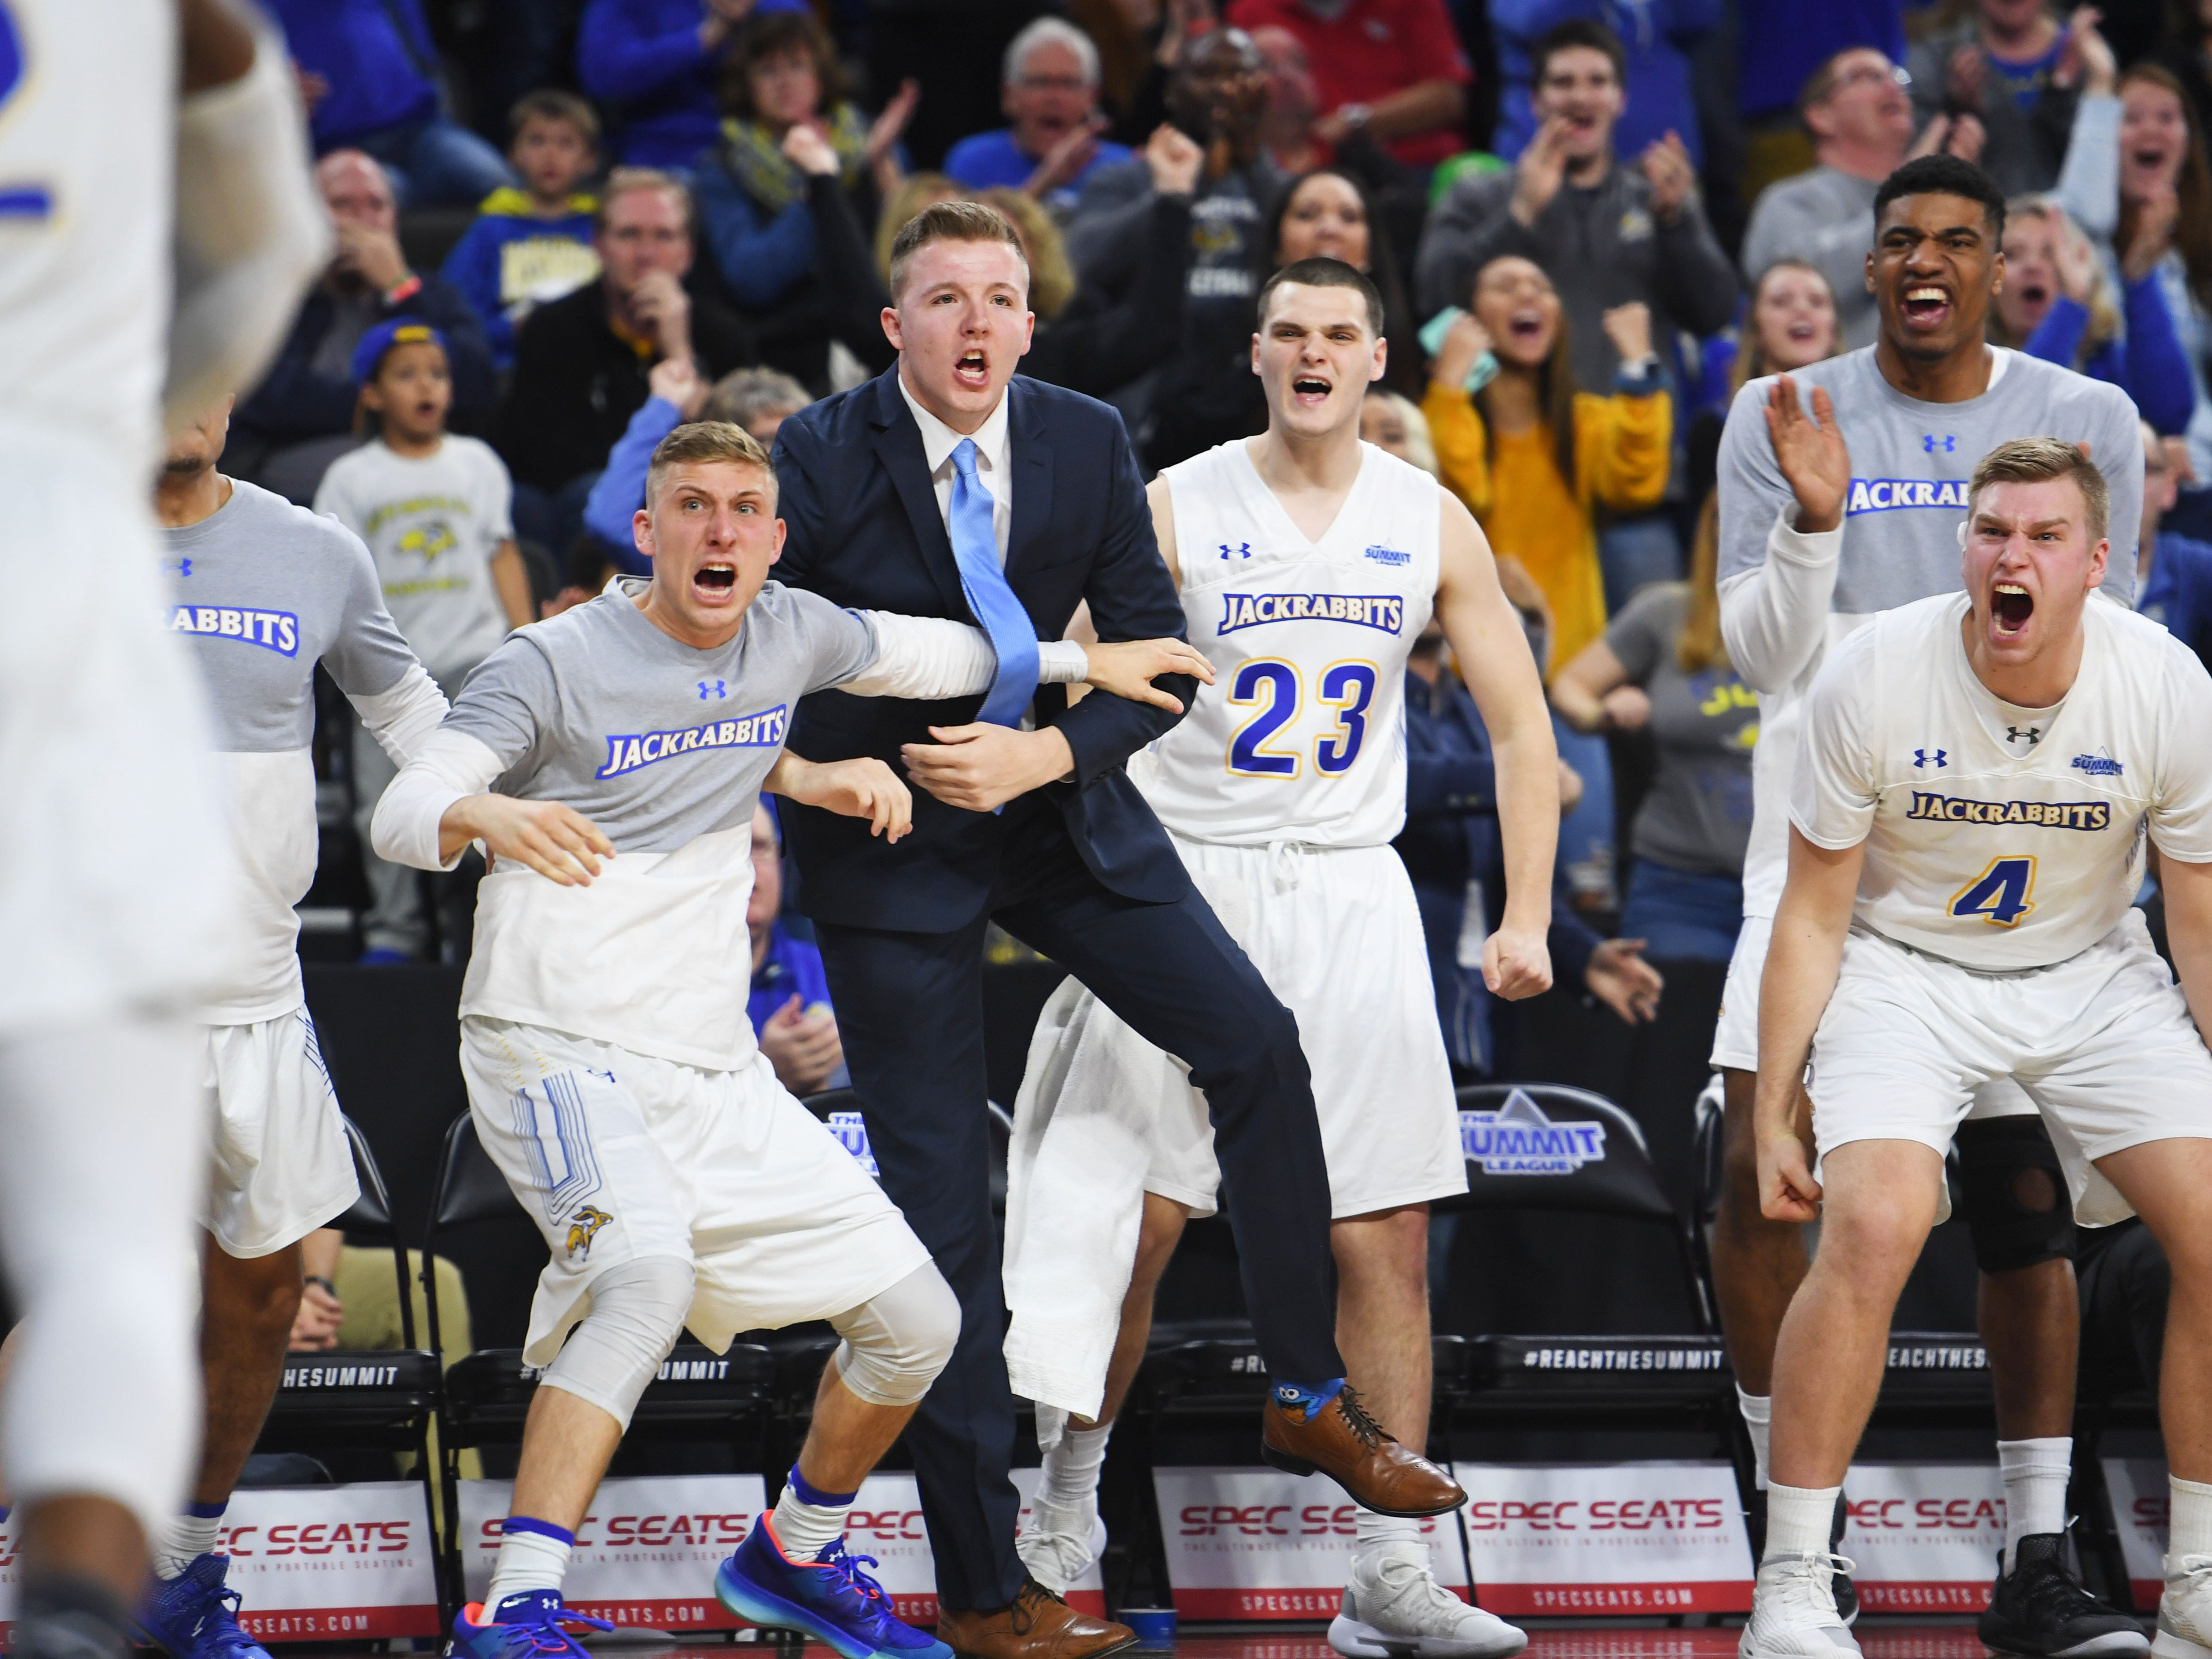 SDSU's sideline reacts during the fourth period of the game against Western Illinois Saturday, March 9, in the Summit League tournament at the Denny Sanford Premier Center in Sioux Falls. Western Illinois beat SDSU 79-76.